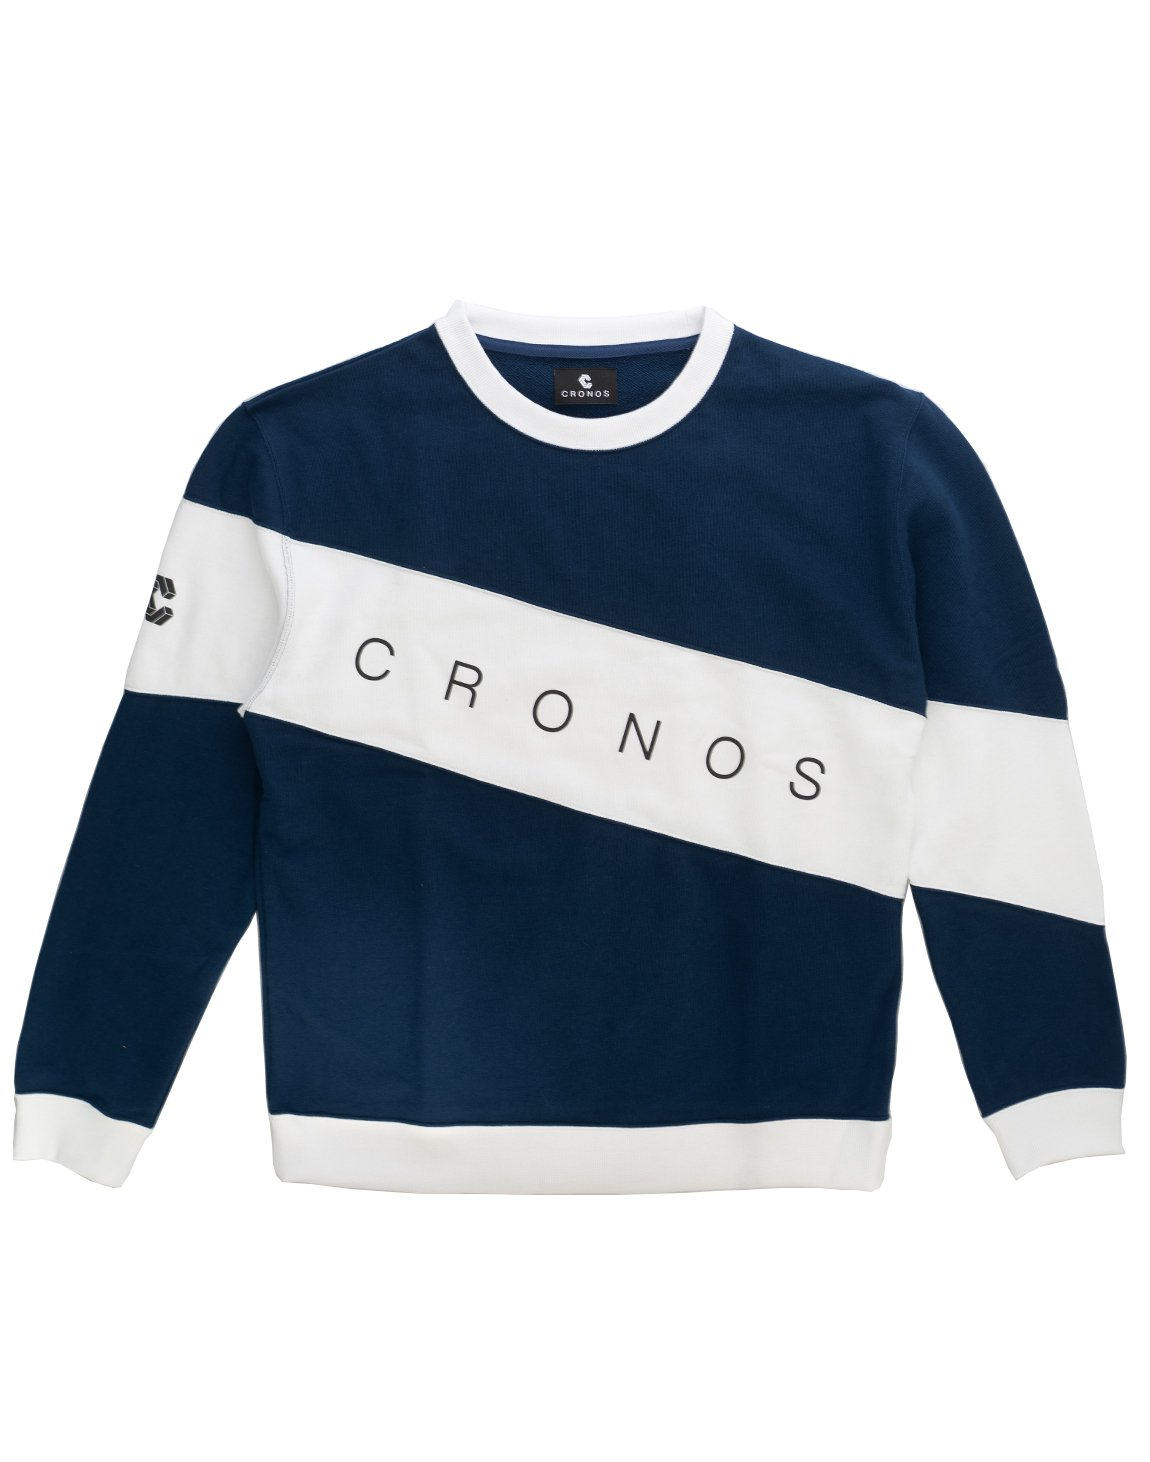 <img class='new_mark_img1' src='https://img.shop-pro.jp/img/new/icons1.gif' style='border:none;display:inline;margin:0px;padding:0px;width:auto;' />CRONOS FRONT THICK LINE TRAINER【NAVY】